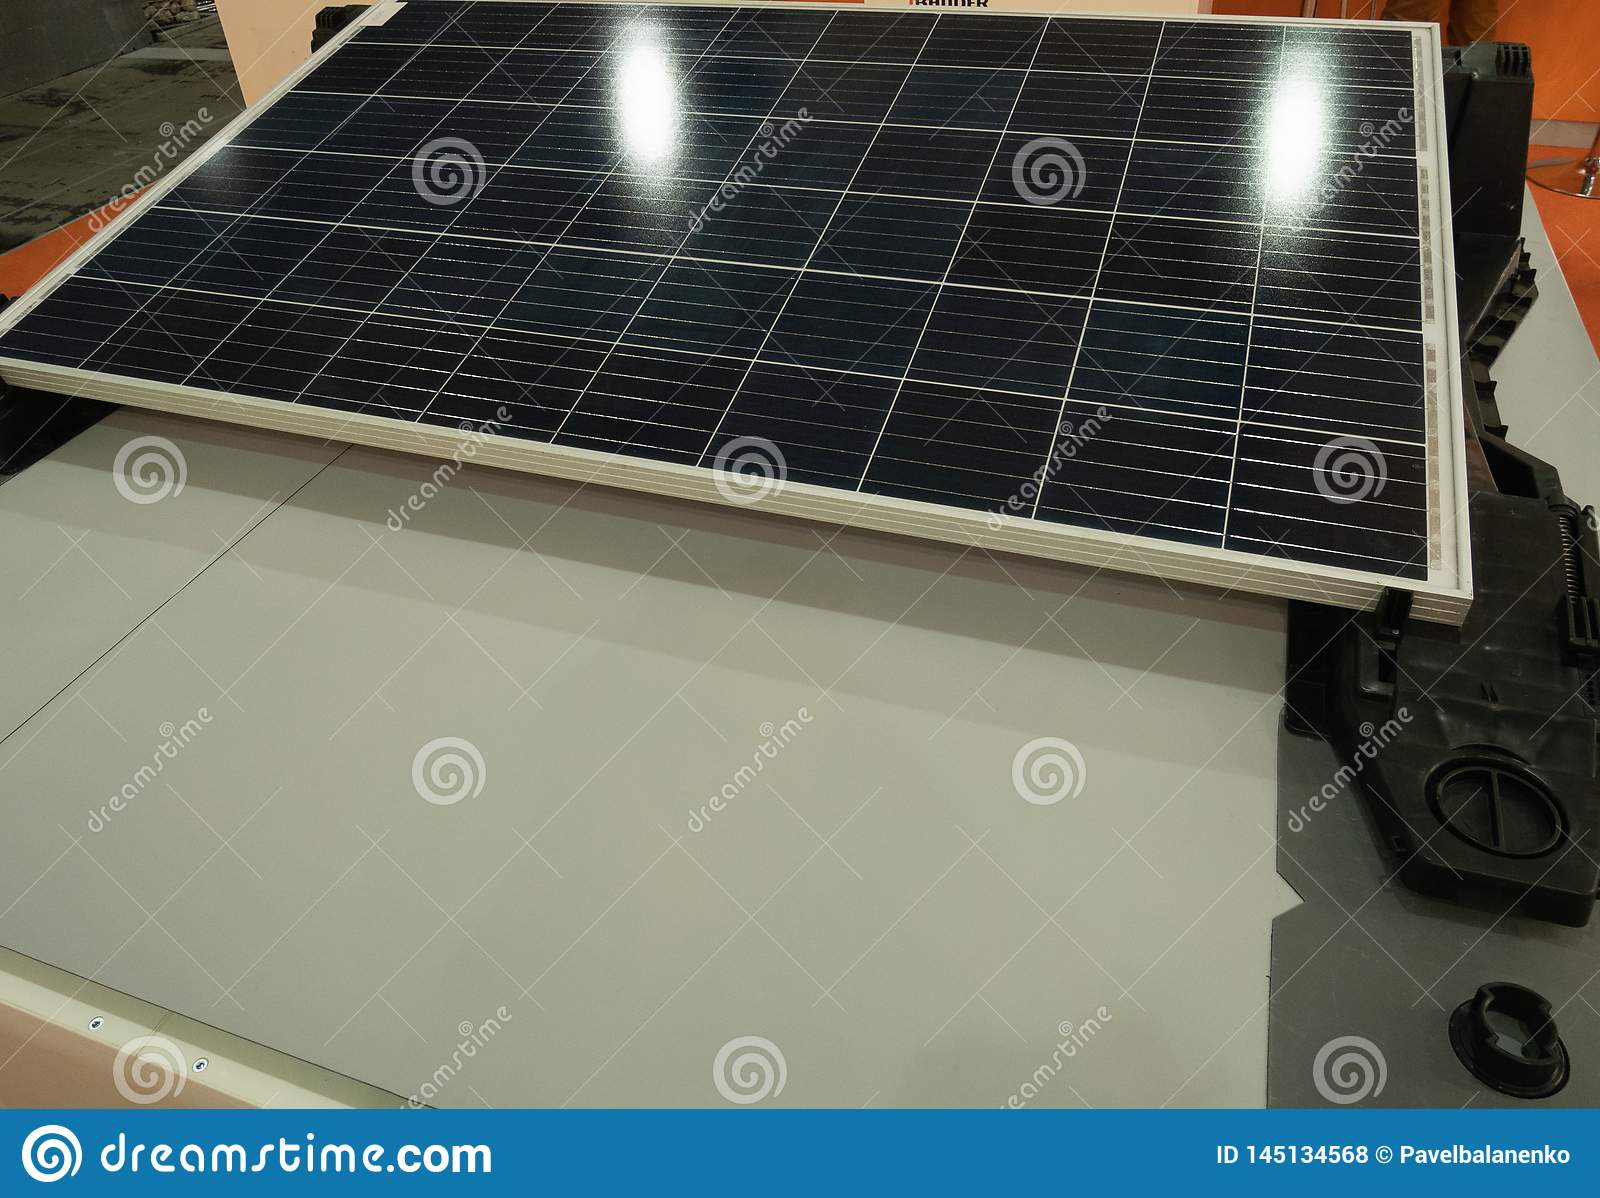 Solar panel showcase at diy hardware store. energy saving equipment for autonomous electricity generating and cost saving on